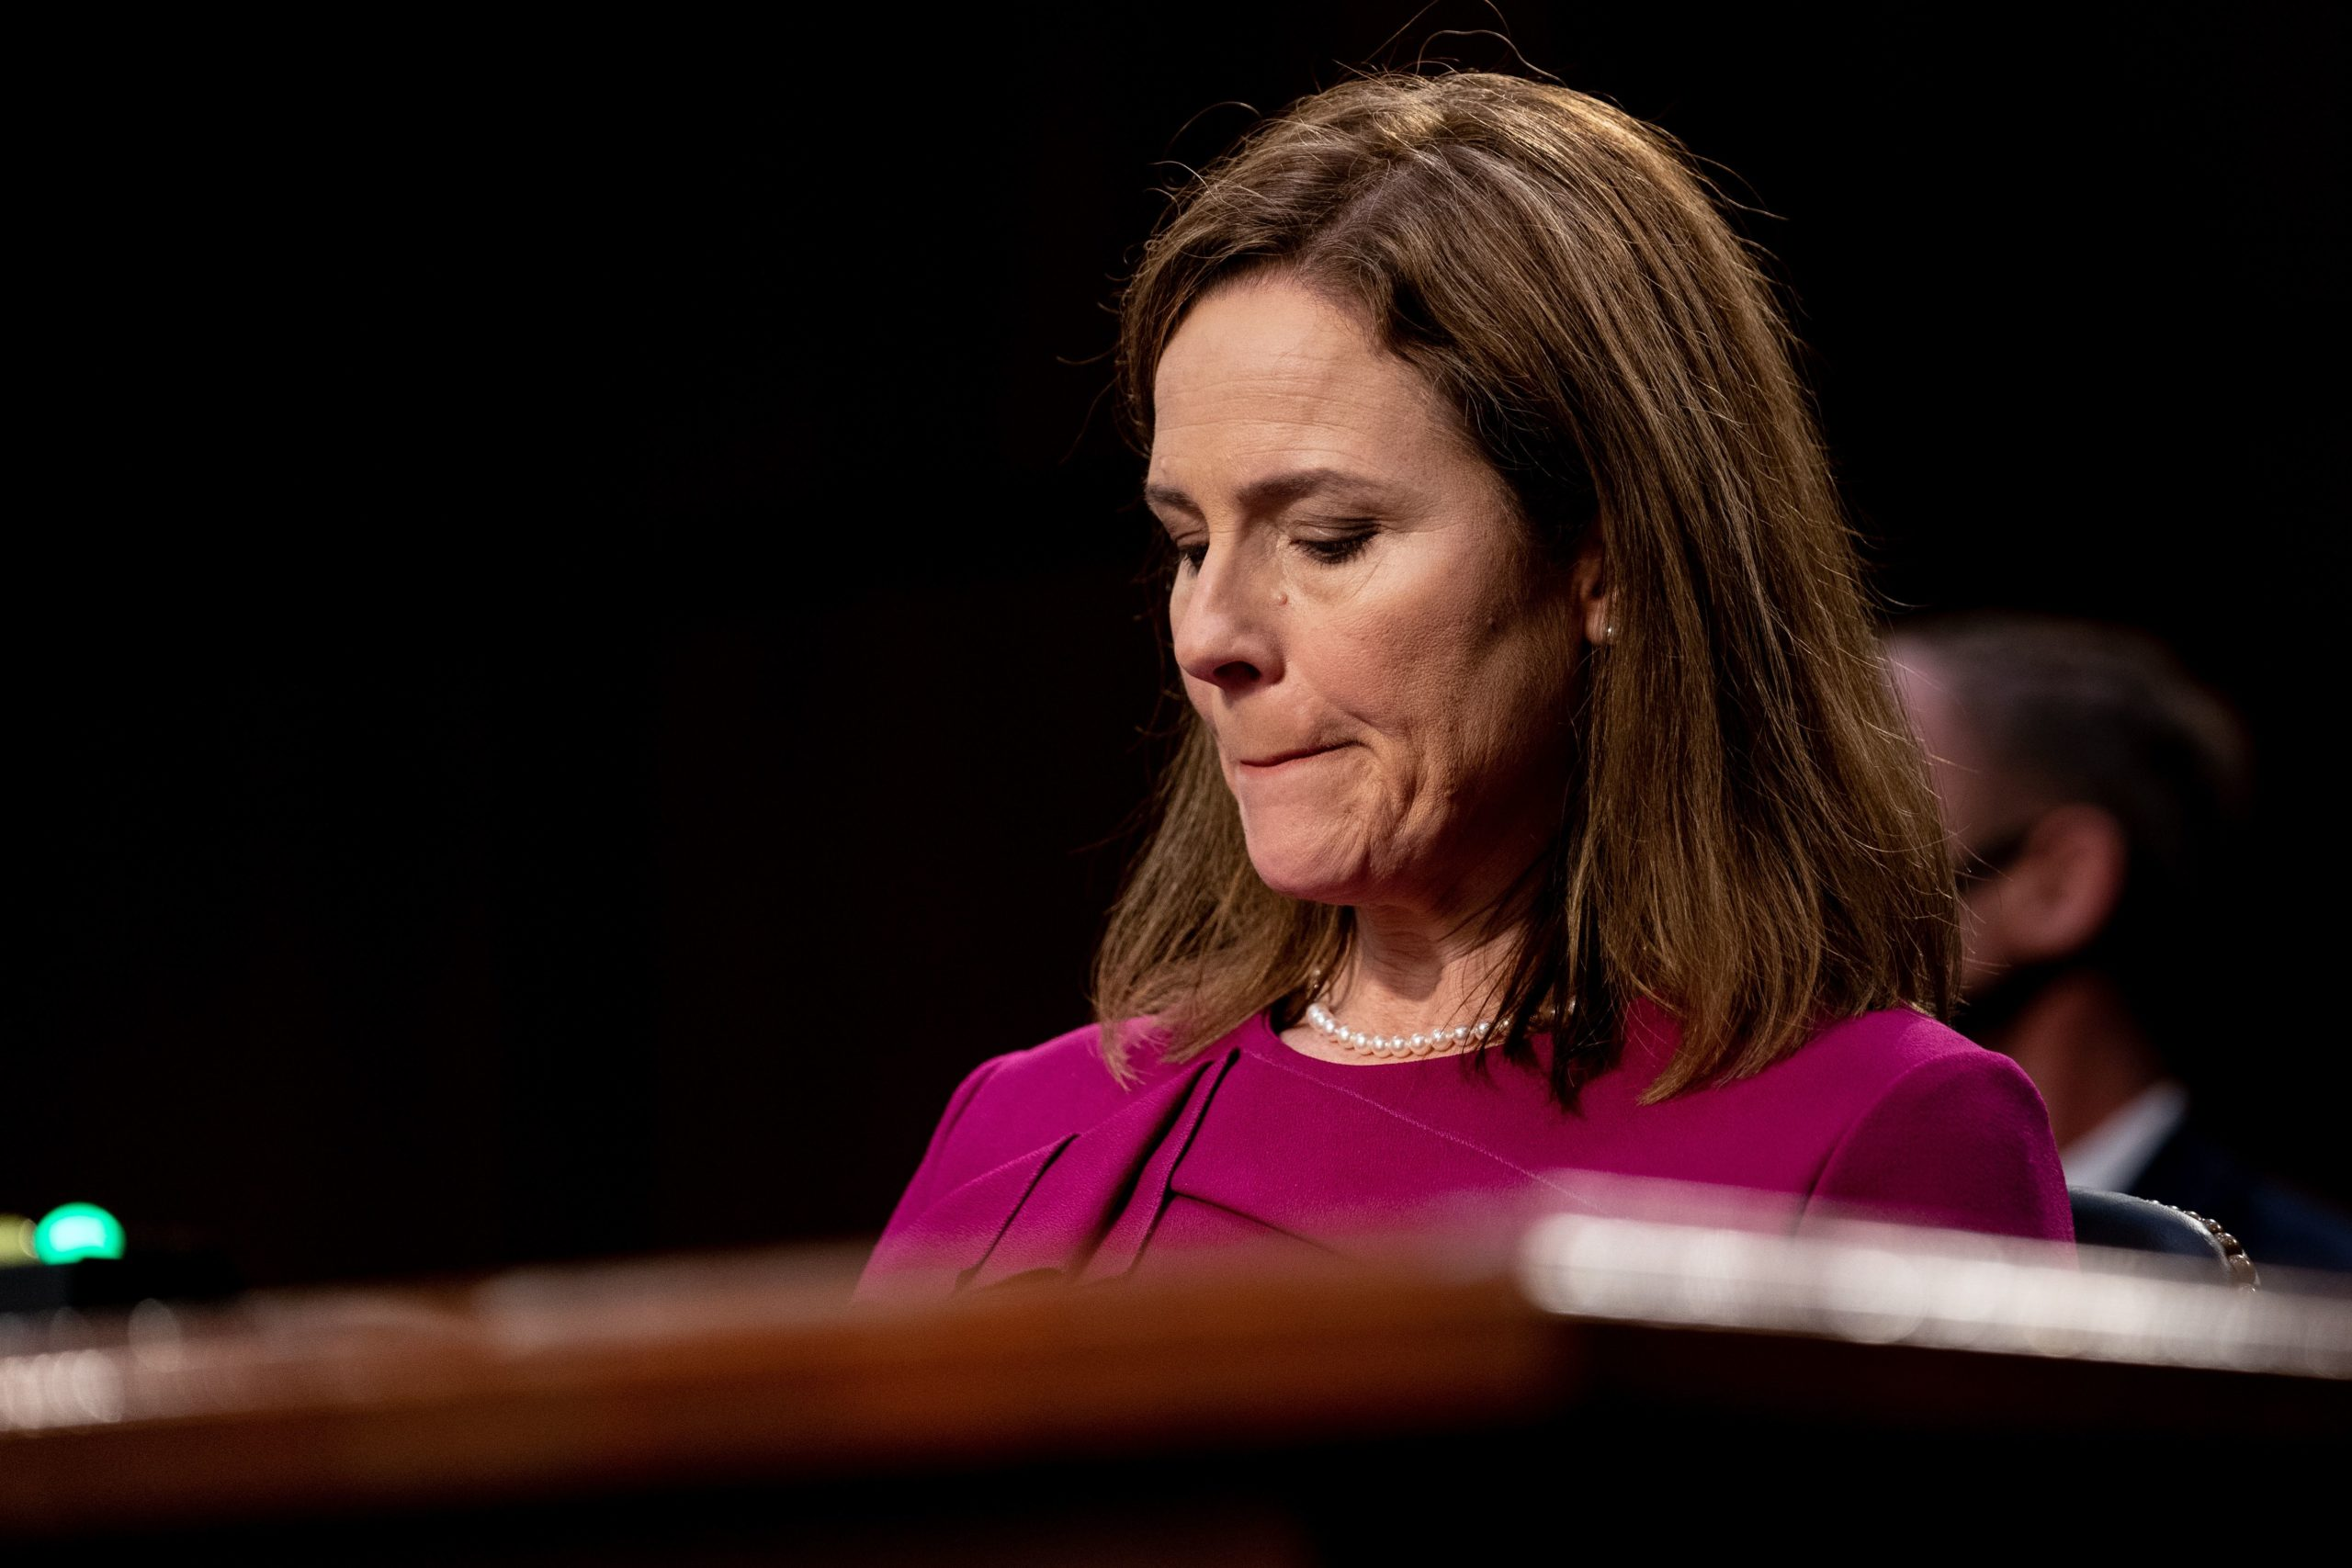 Judge Amy Coney Barrett attends first day of her Senate confirmation hearing to the Supreme Court on Capitol Hill in Washington, DC on October 12, 2020.